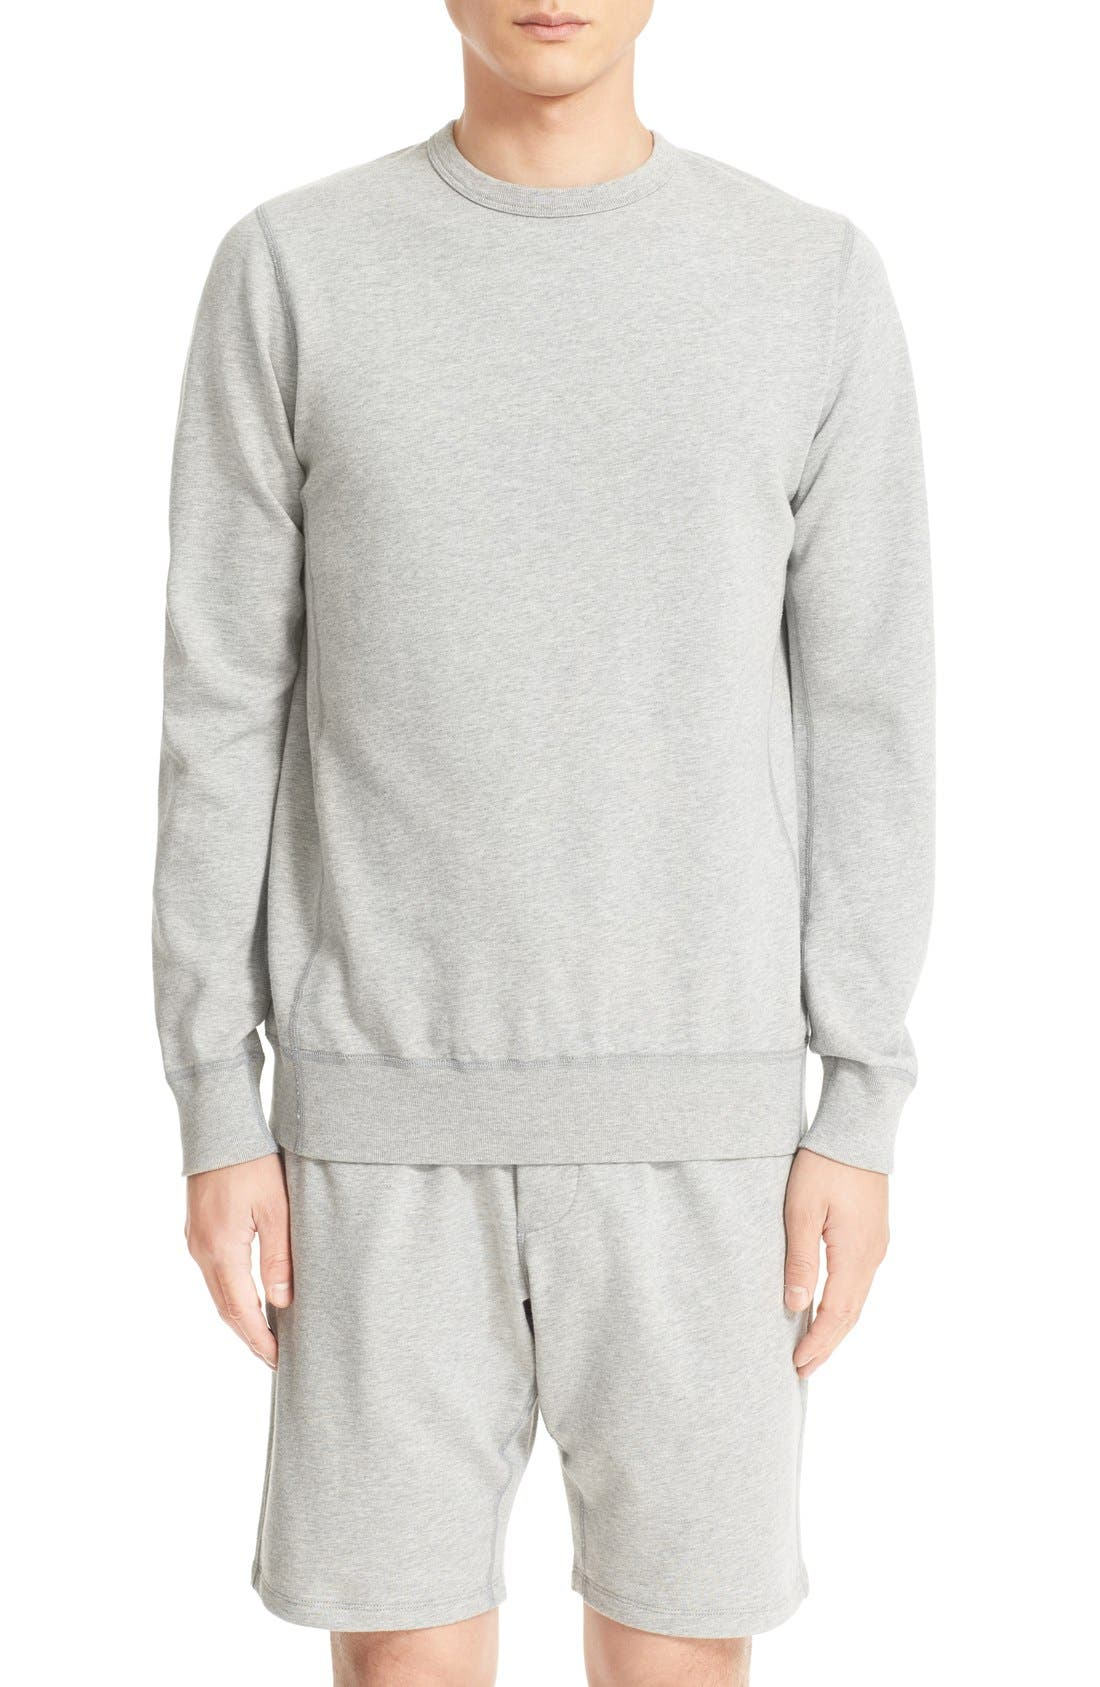 French Terry Sweatshirt,                         Main,                         color, Heather Grey